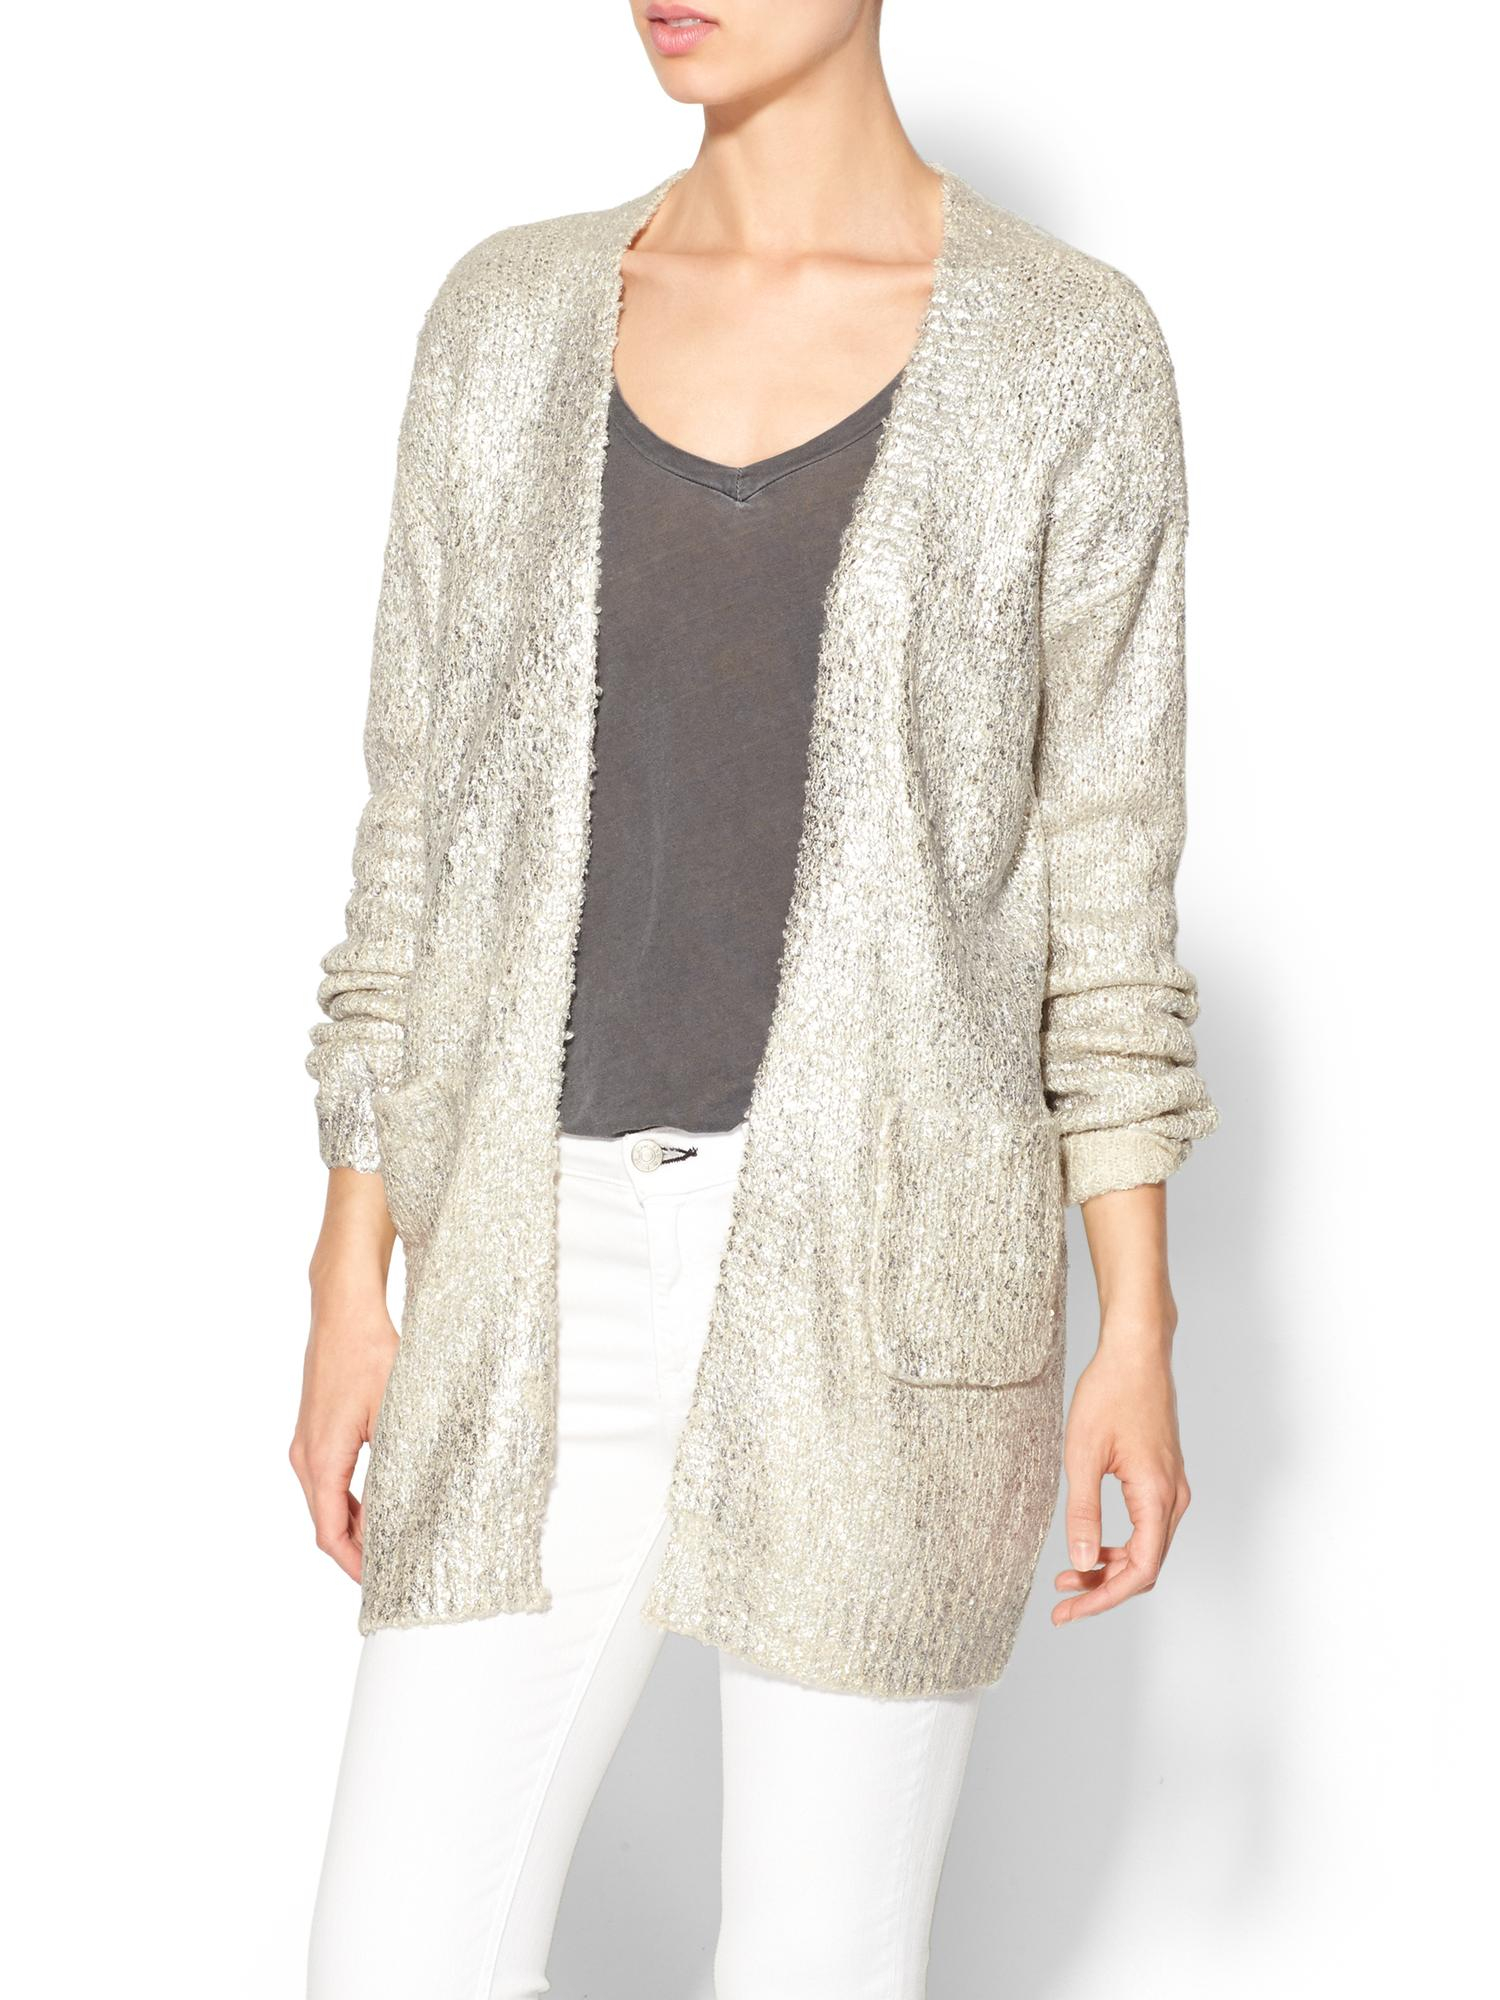 Enjoy free shipping and easy returns every day at Kohl's. Find great deals on Juniors Cardigans Sweaters at Kohl's today!